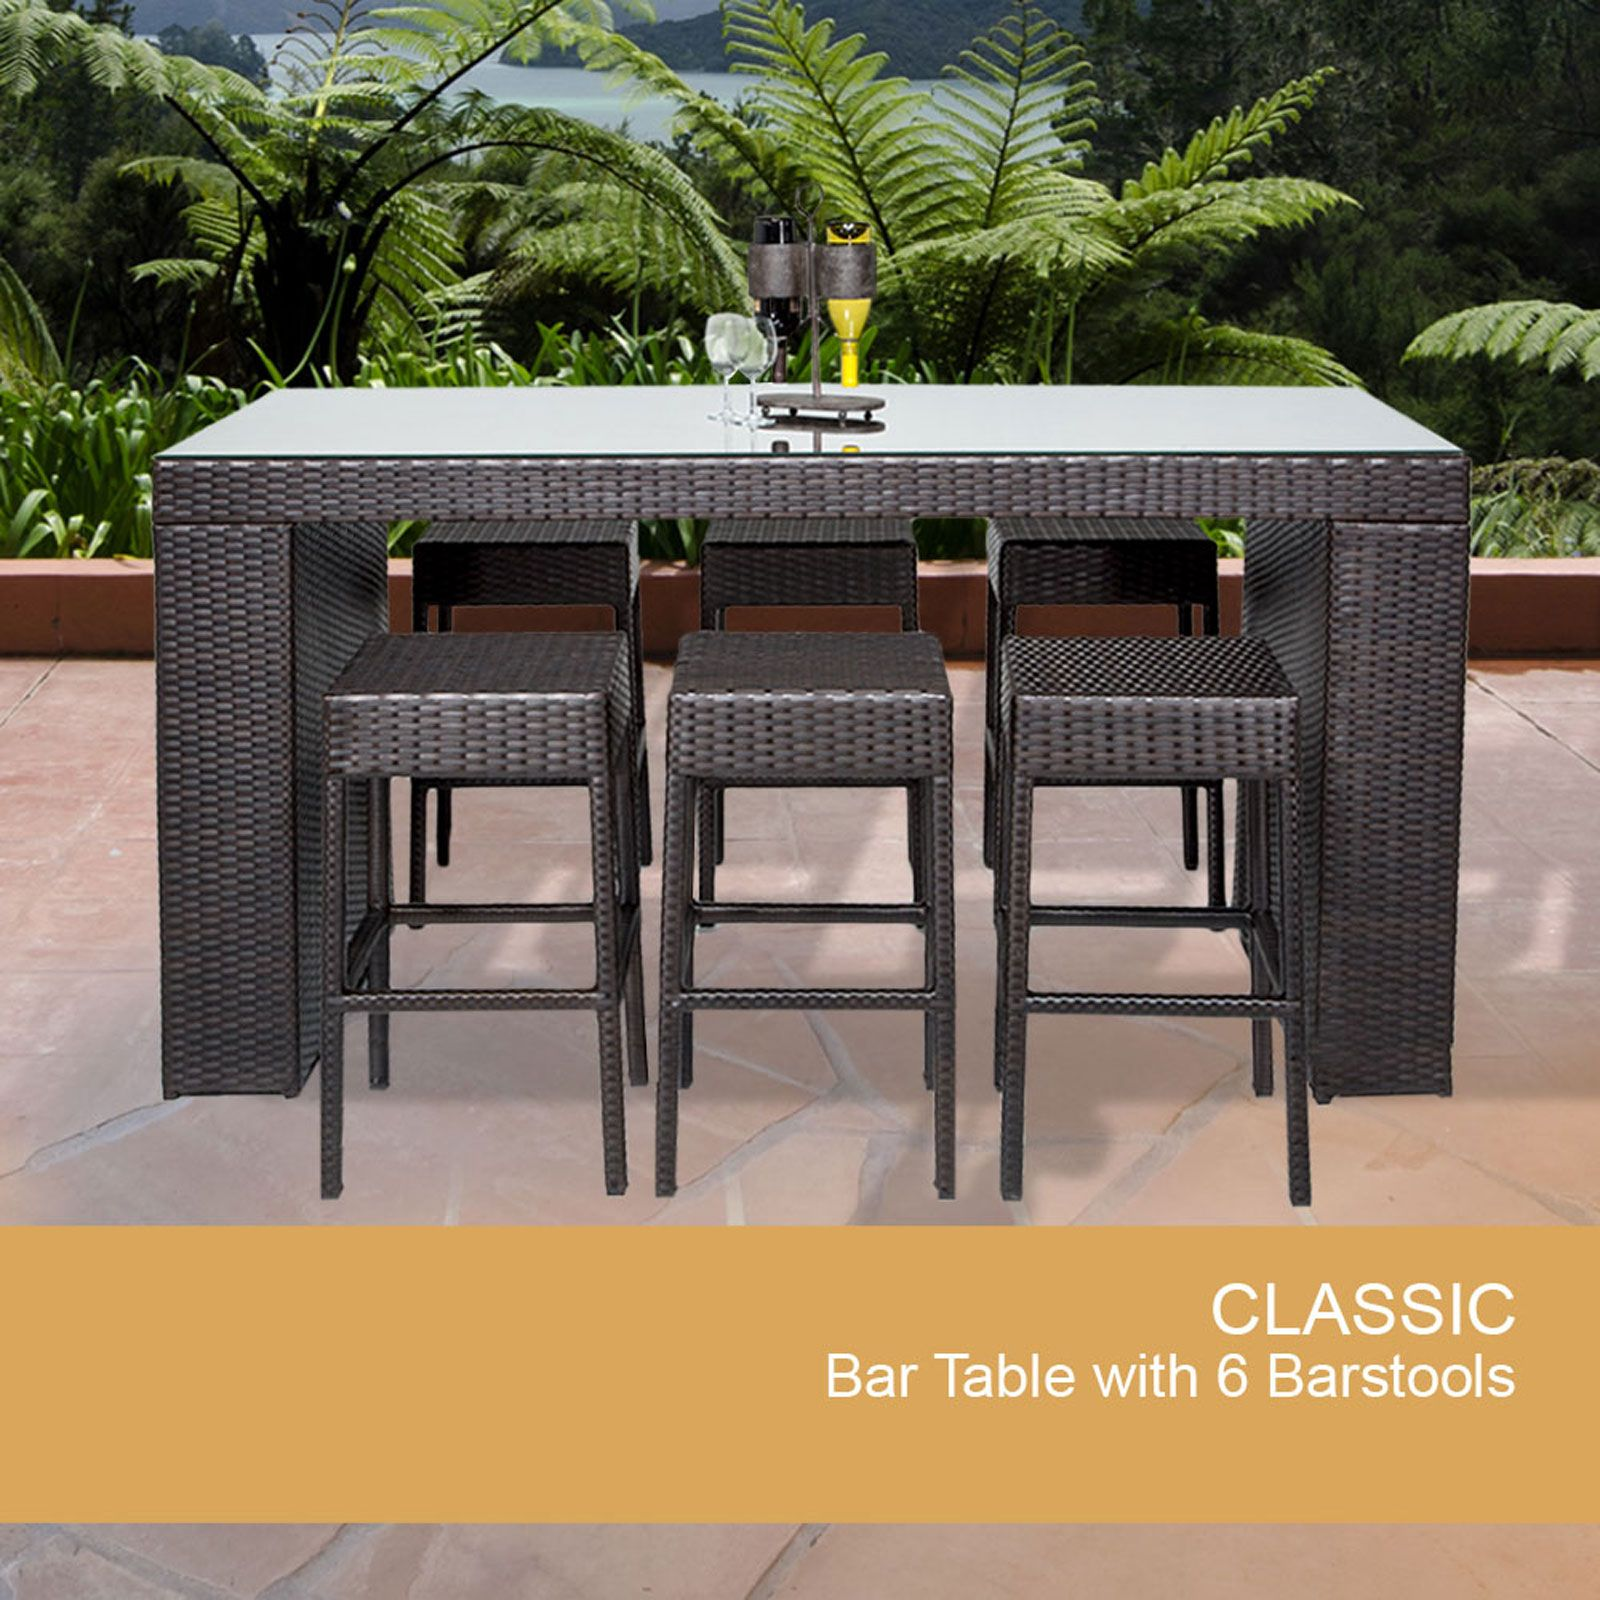 picturesque patio or bar good height furniture set outdoor adorable sets clearance